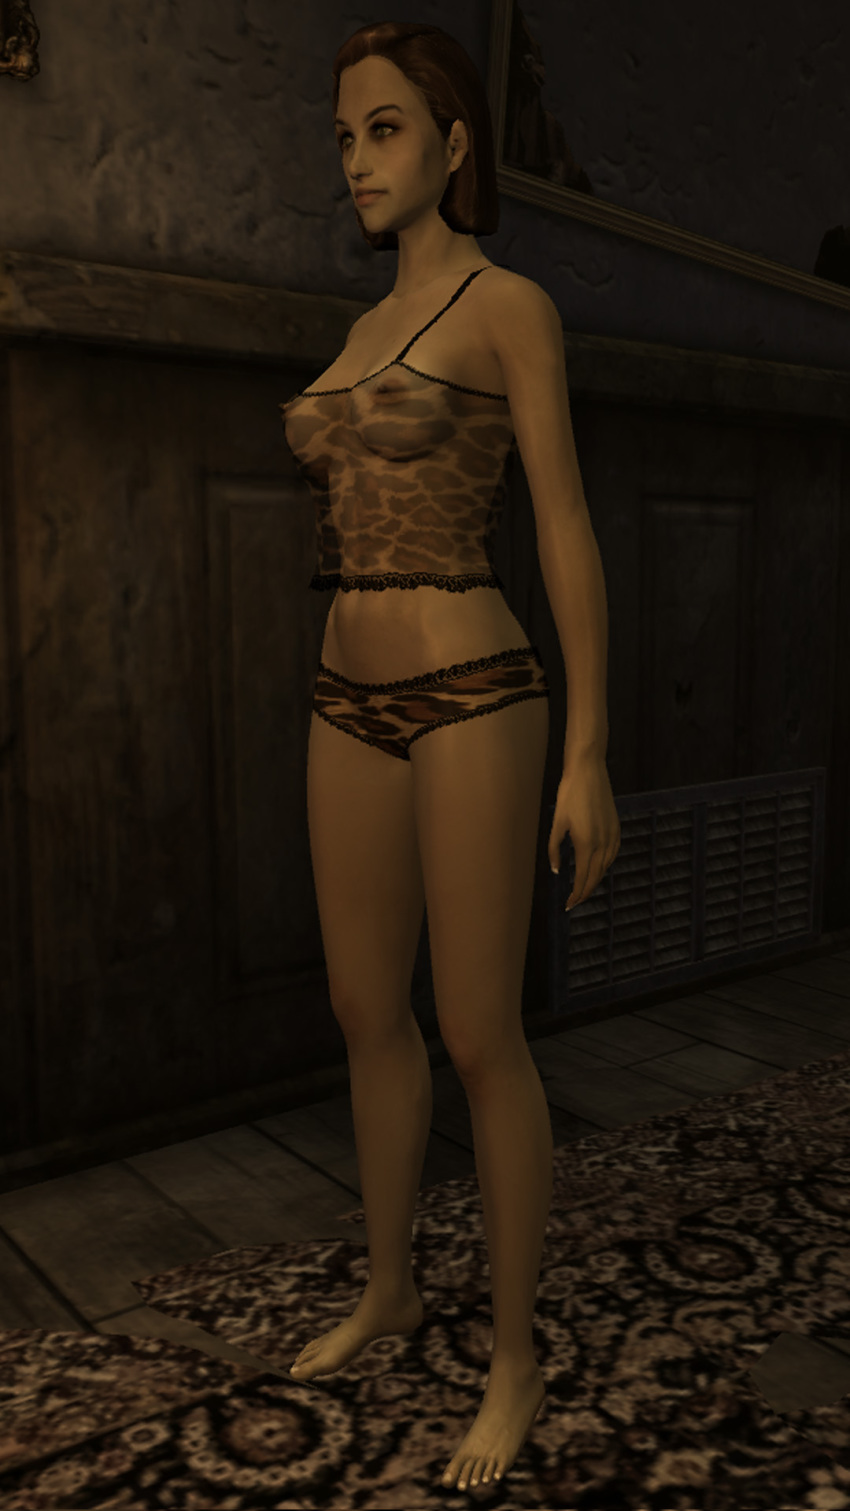 dr fallout vegas new dala Is this a zombie nude